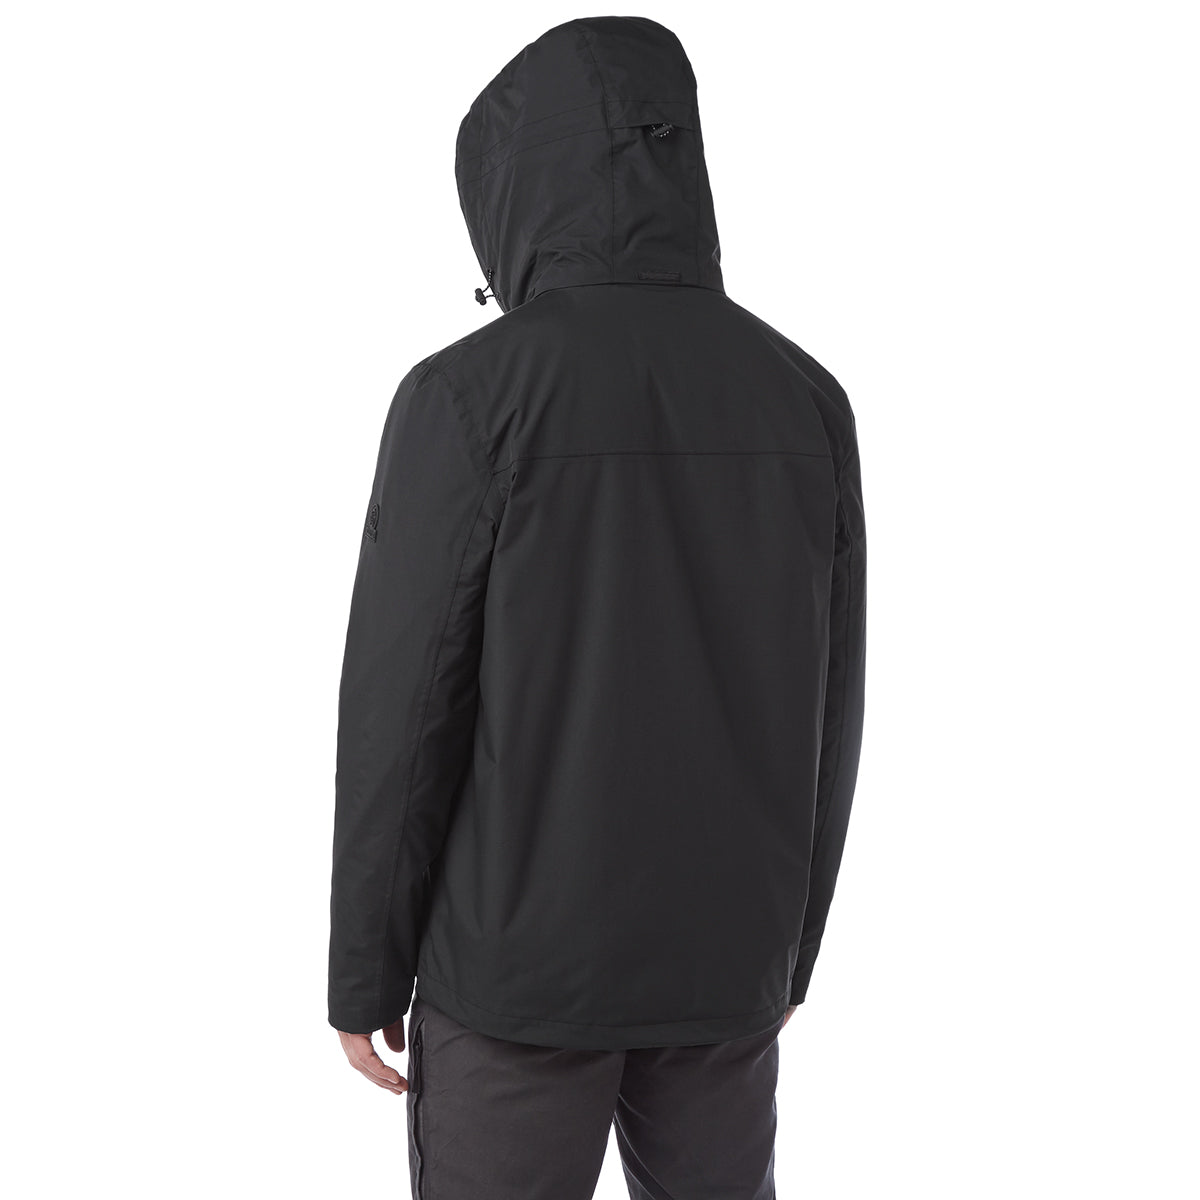 Gambit Mens Waterproof 3-In-1 Jacket - Black image 4